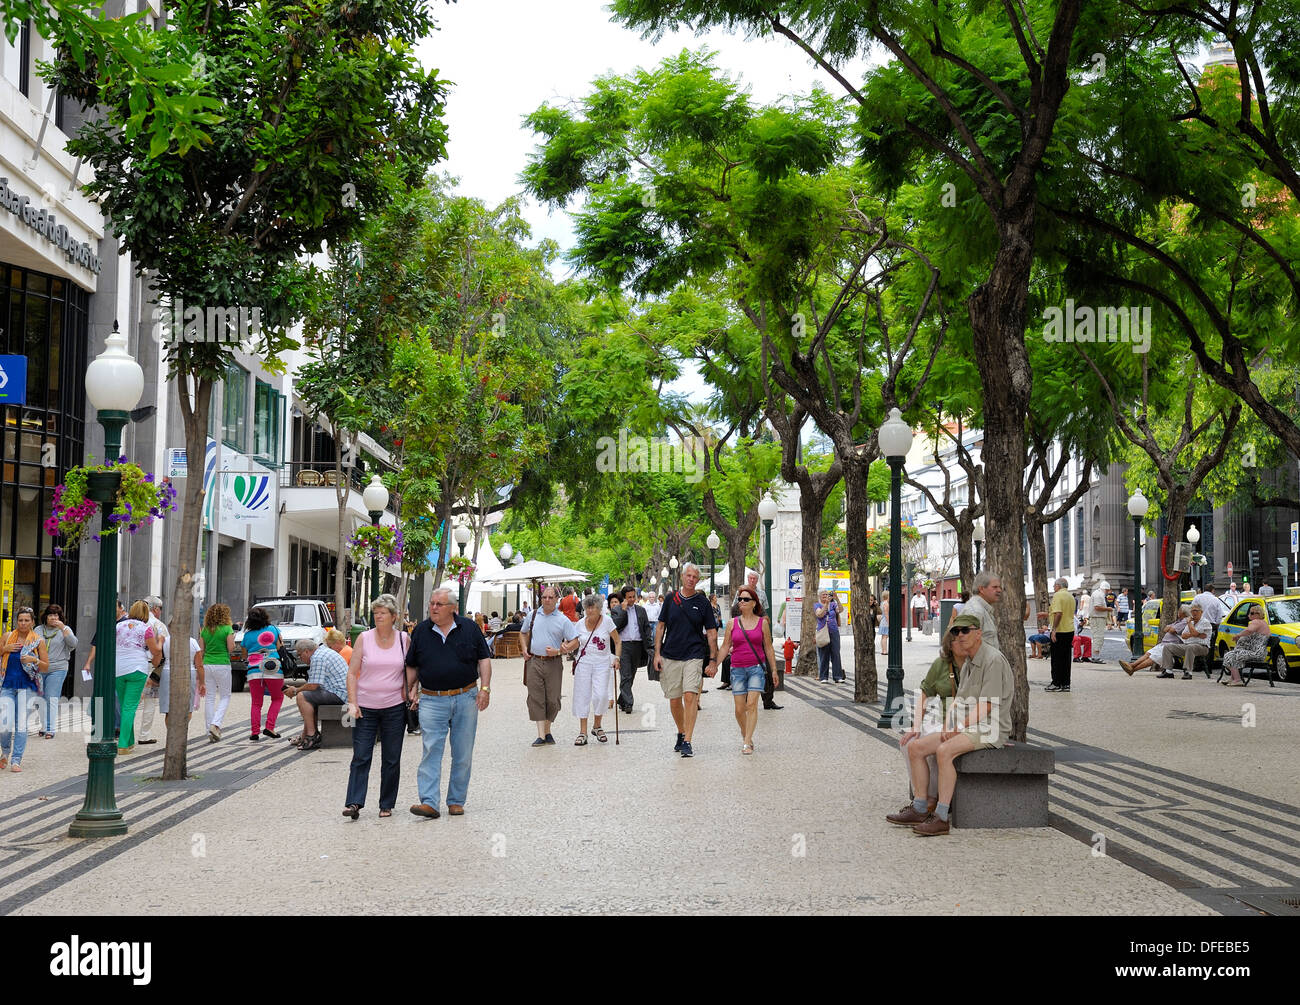 Tourists walking through a pedestrianized area of Funchal Madeira Portugal - Stock Image